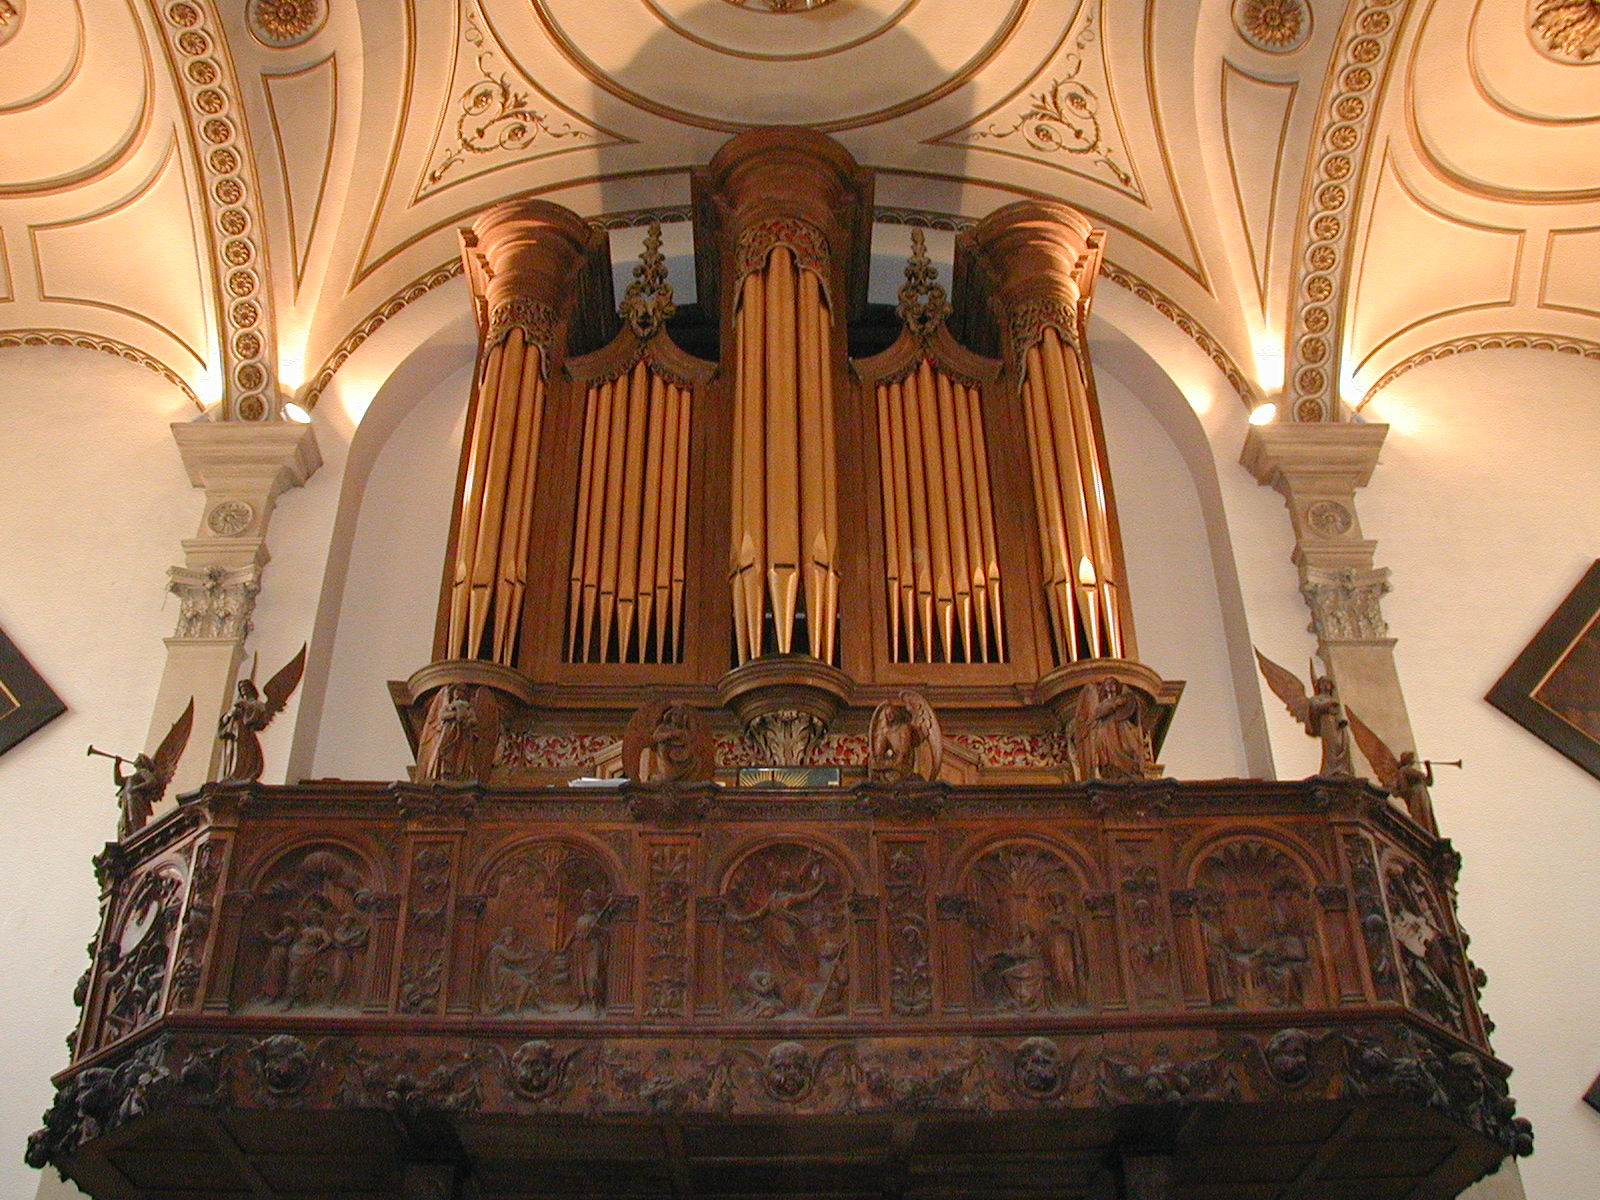 Organ loft - from below